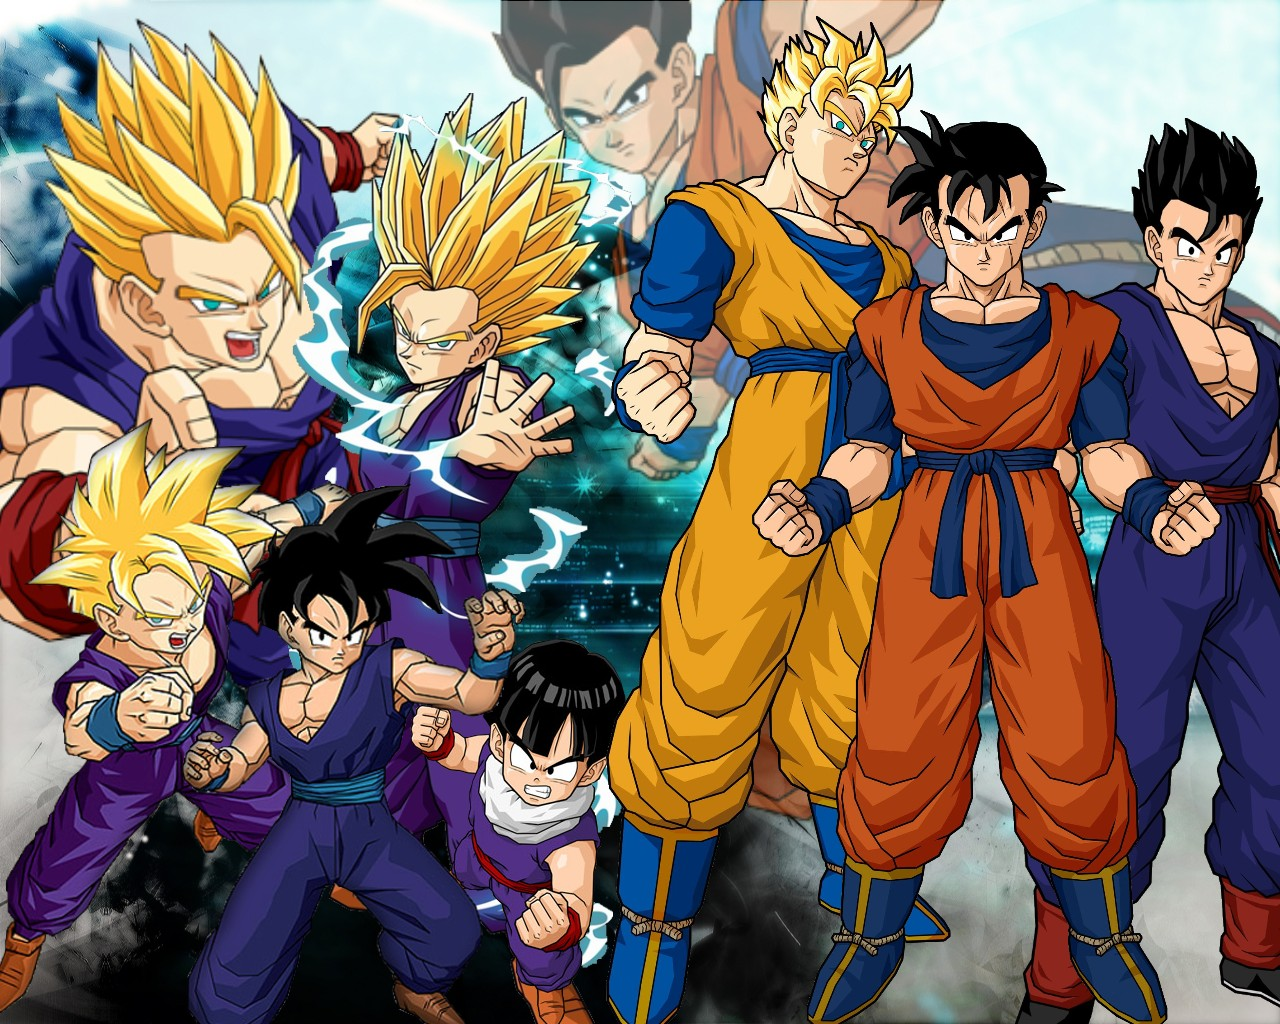 Gohan - Dragon Ball Z Wallpaper (25544340) - Fanpop fanclubsdragonball z